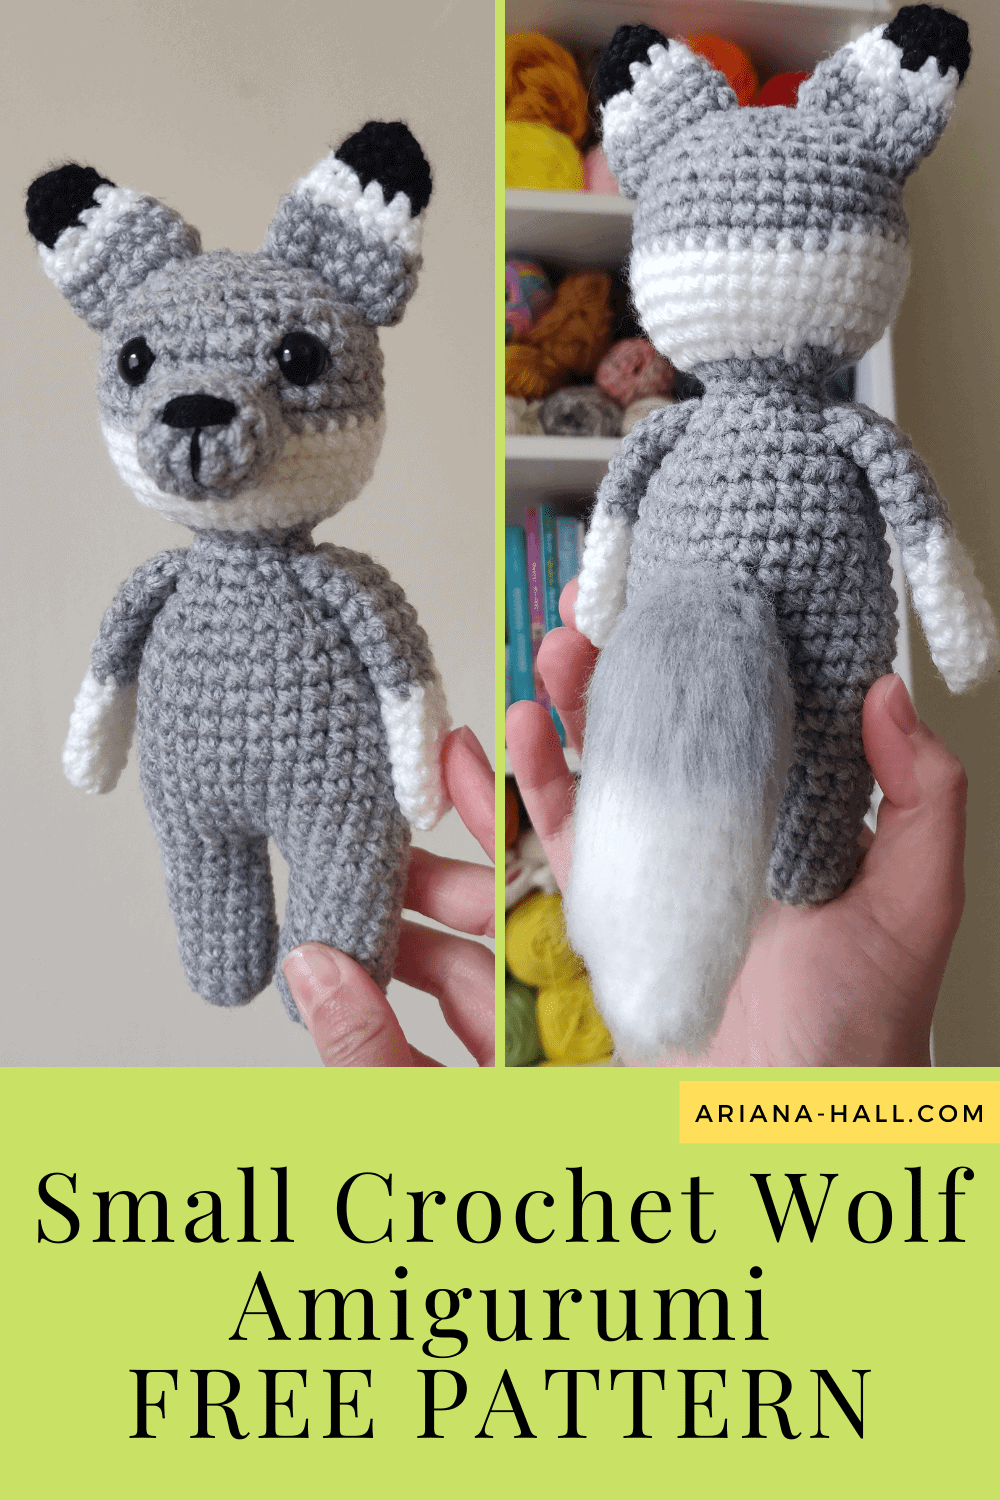 Front and back side of gray crochet wolf.